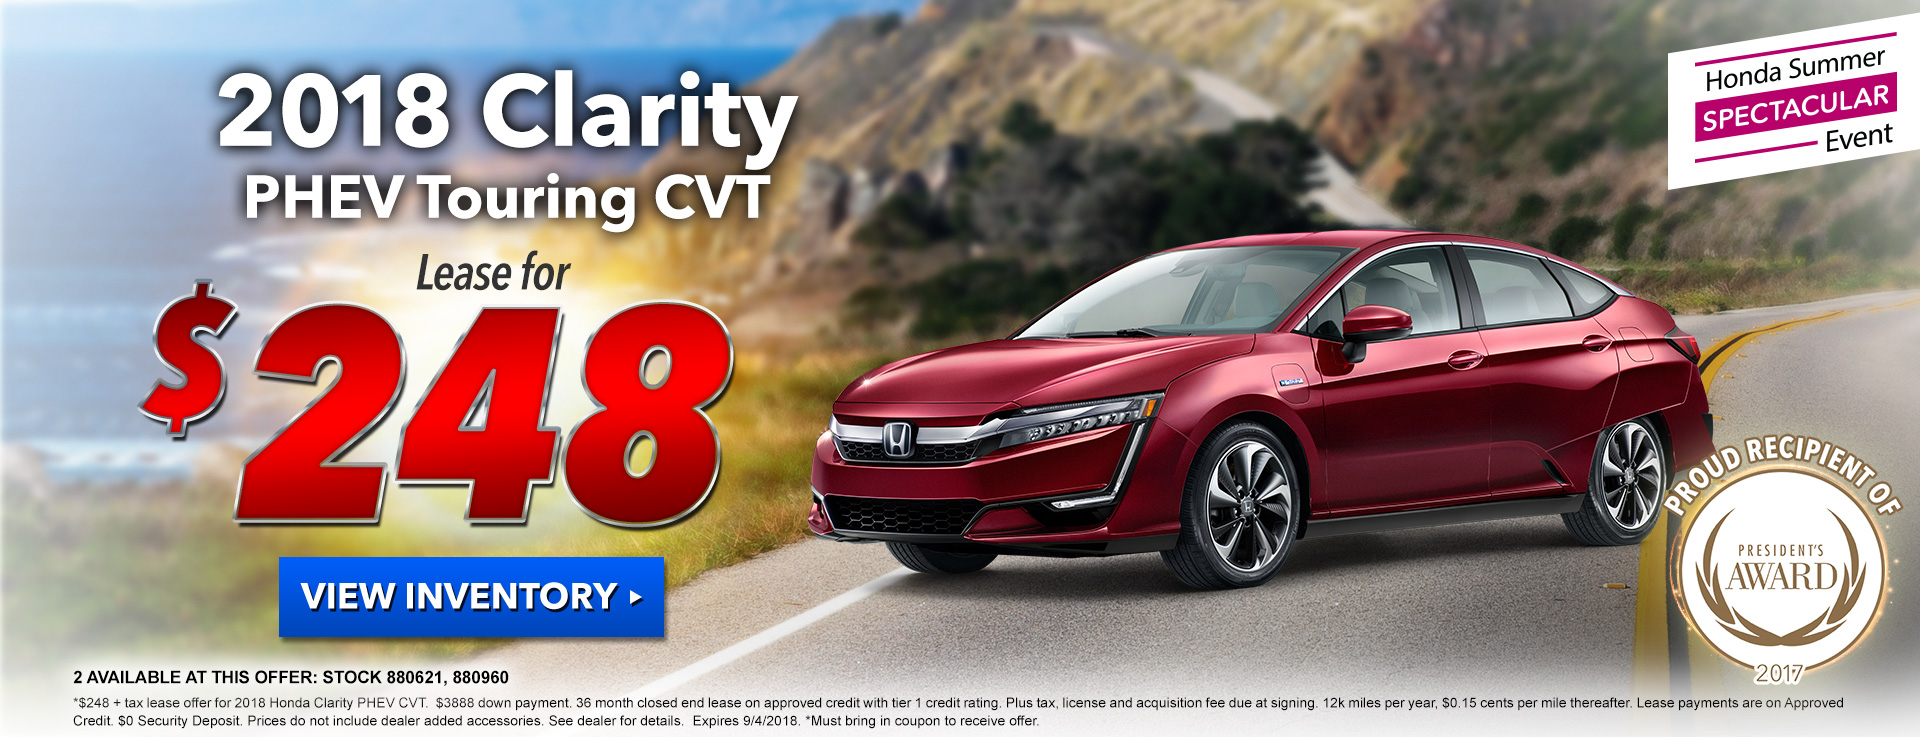 Honda Clarity $248 Lease